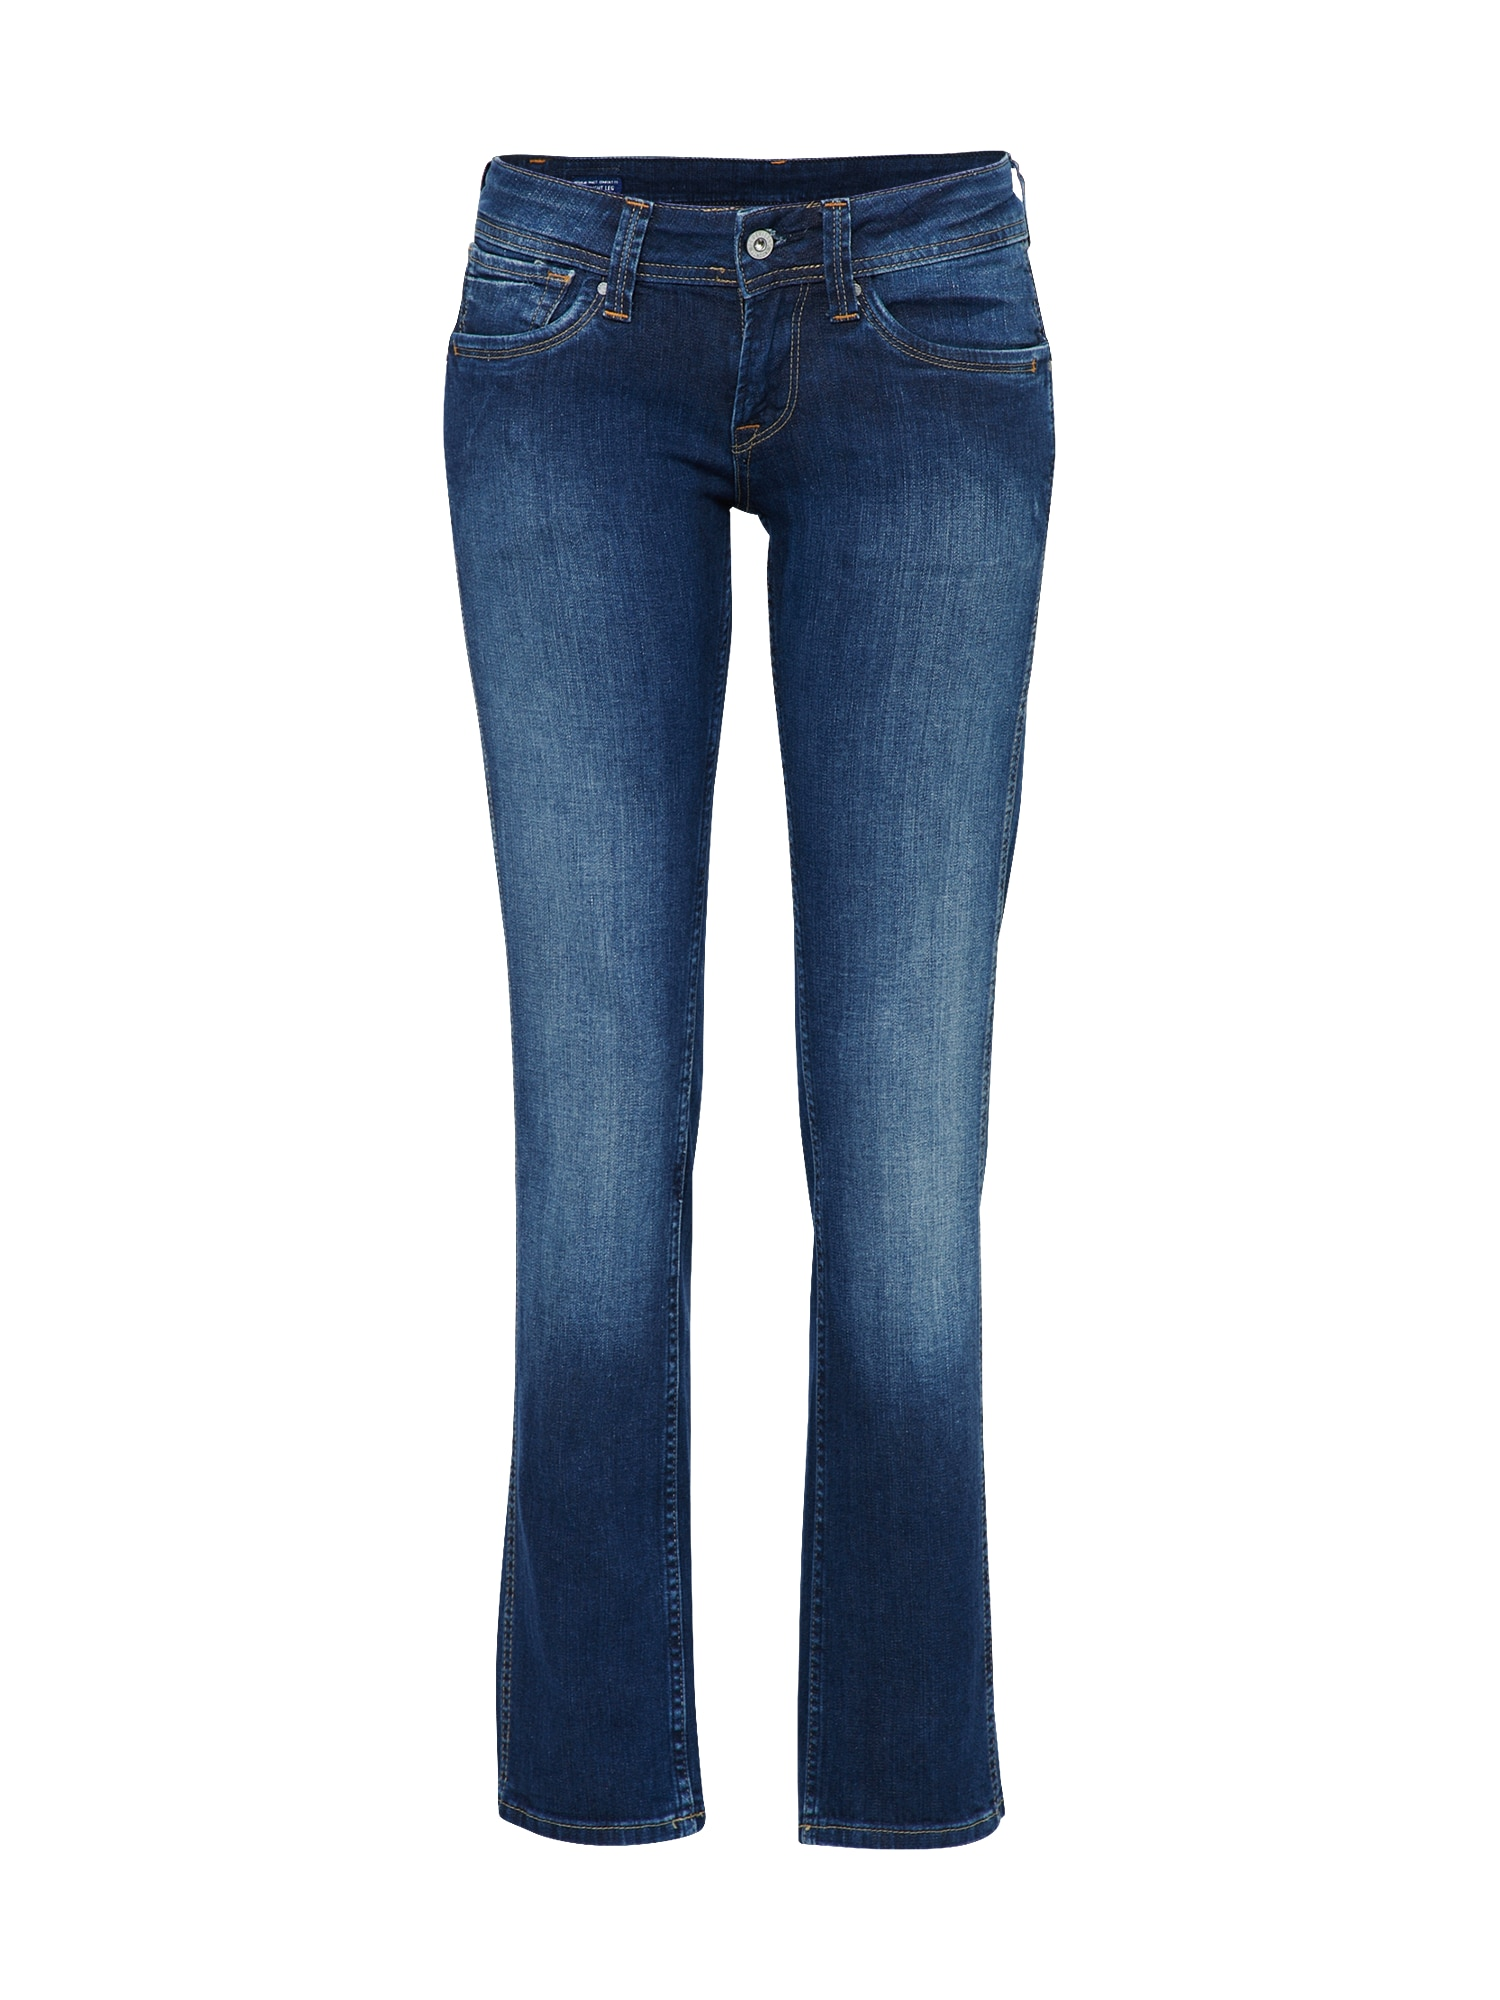 Pepe Jeans Dames Jeans Olympia blue denim